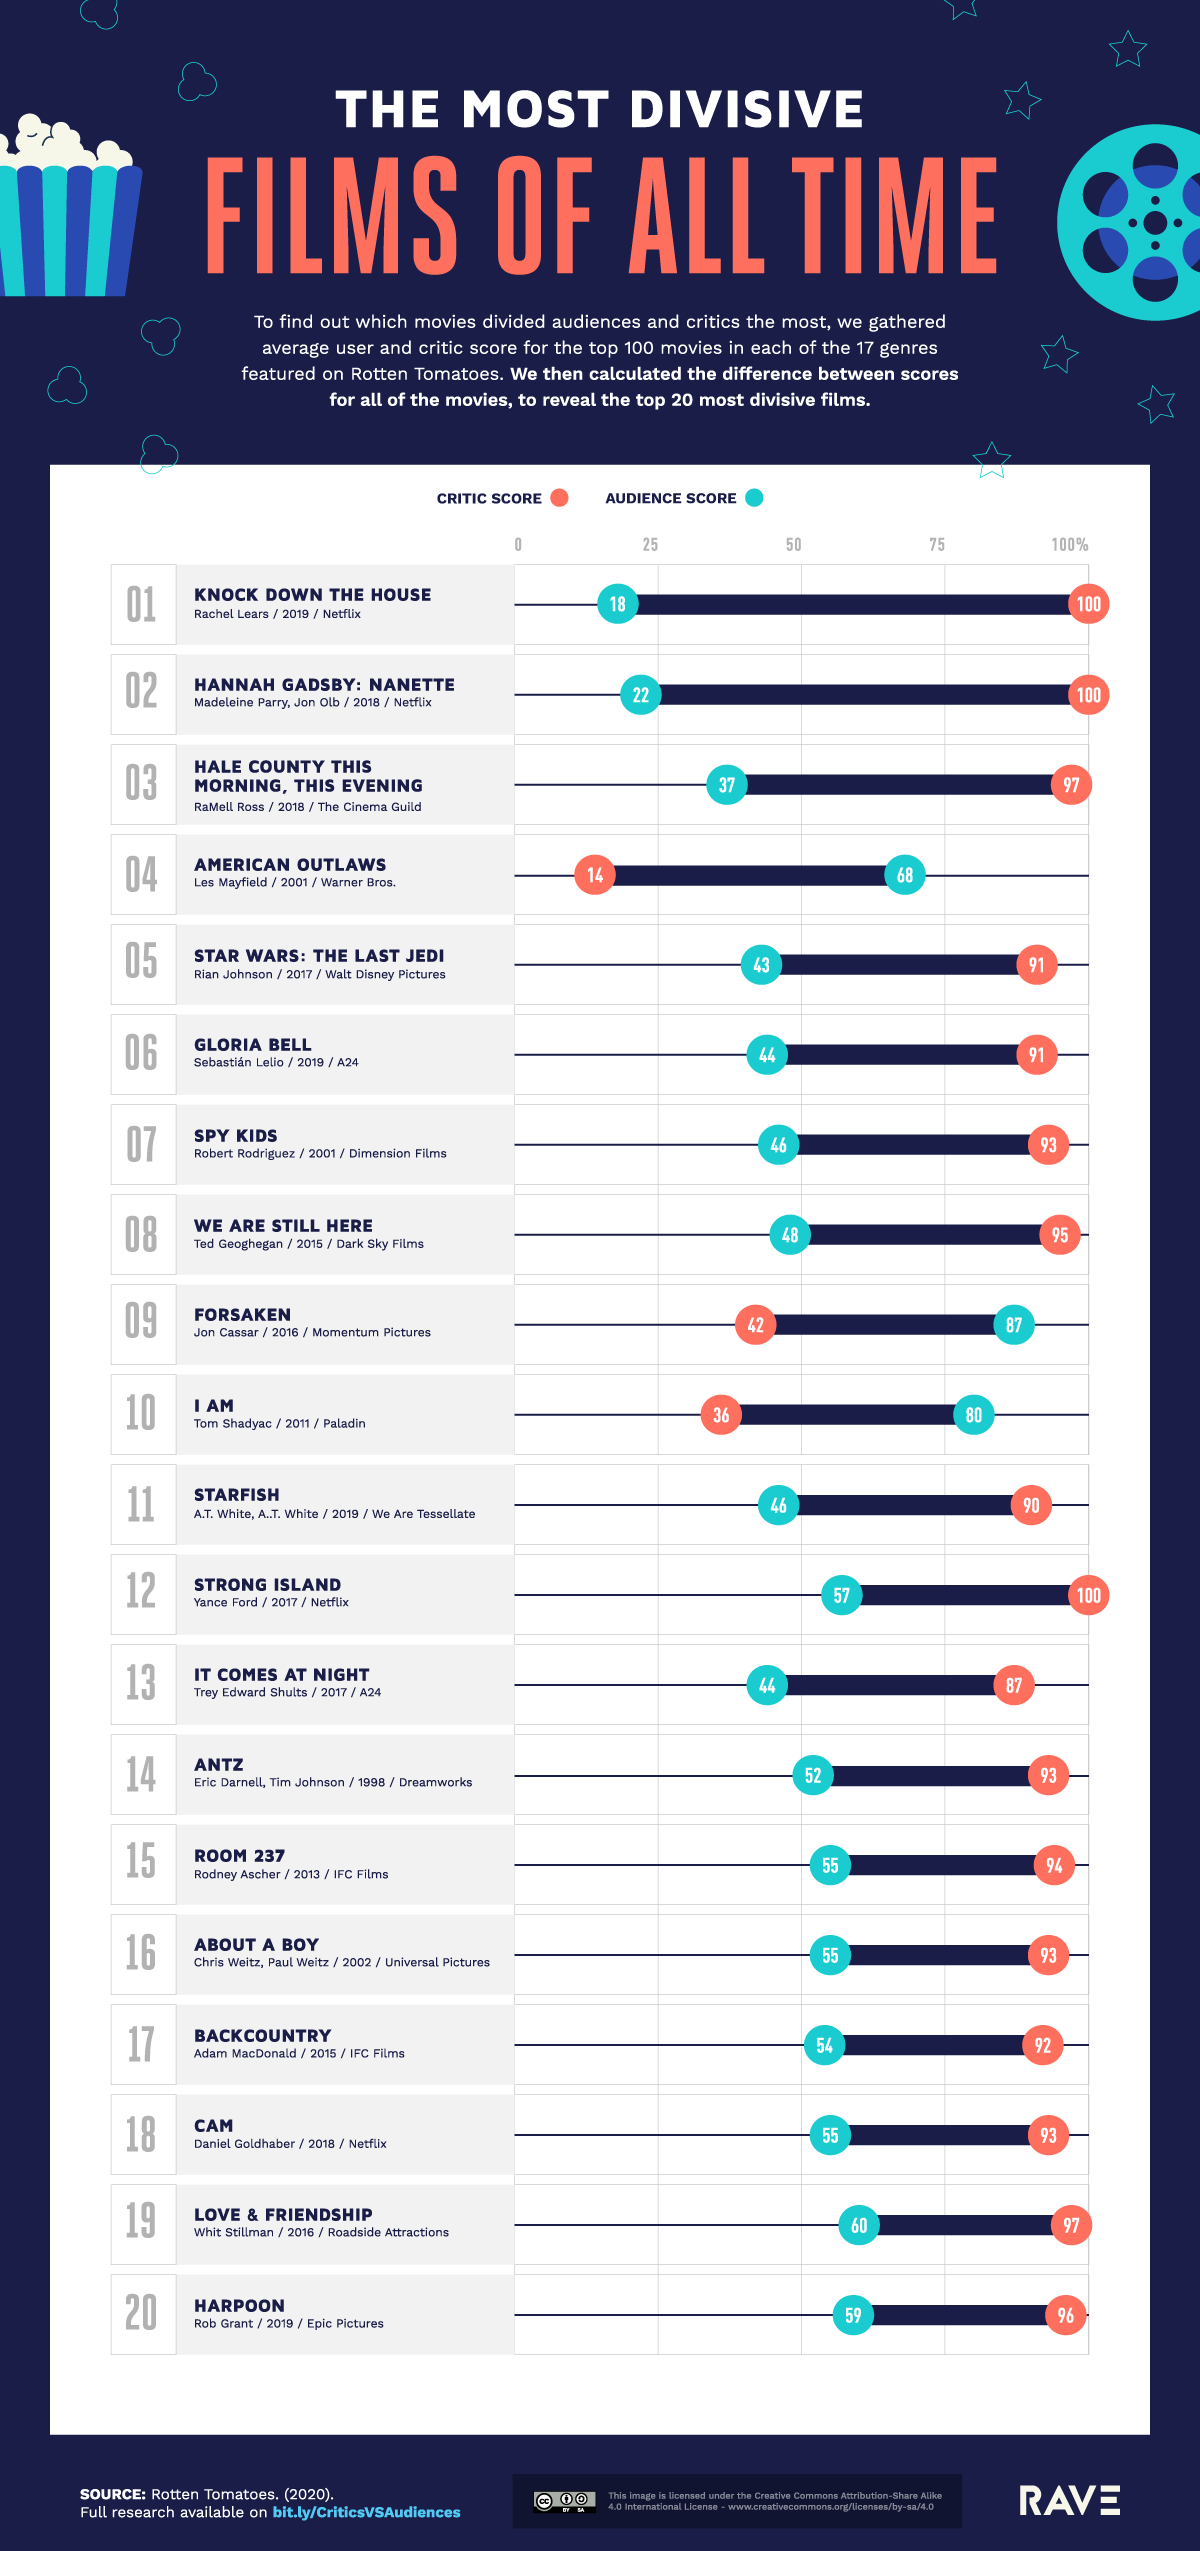 The Most Divisive Films of all Time